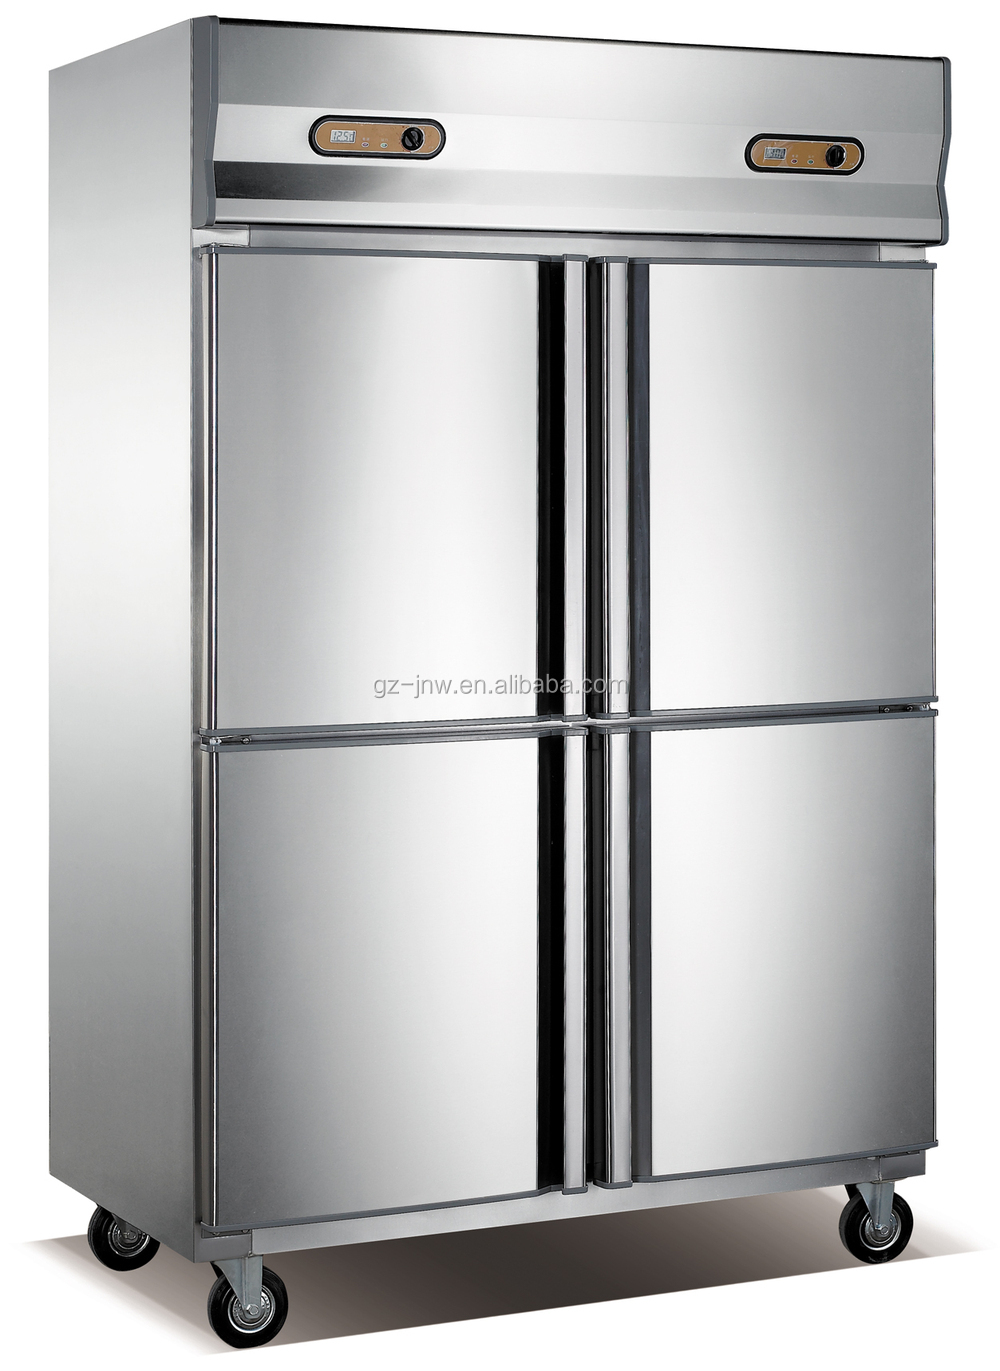 Restaurant Kitchen Refrigerator restaurant kitchen stainless steel 4 door freezer/ commercial side